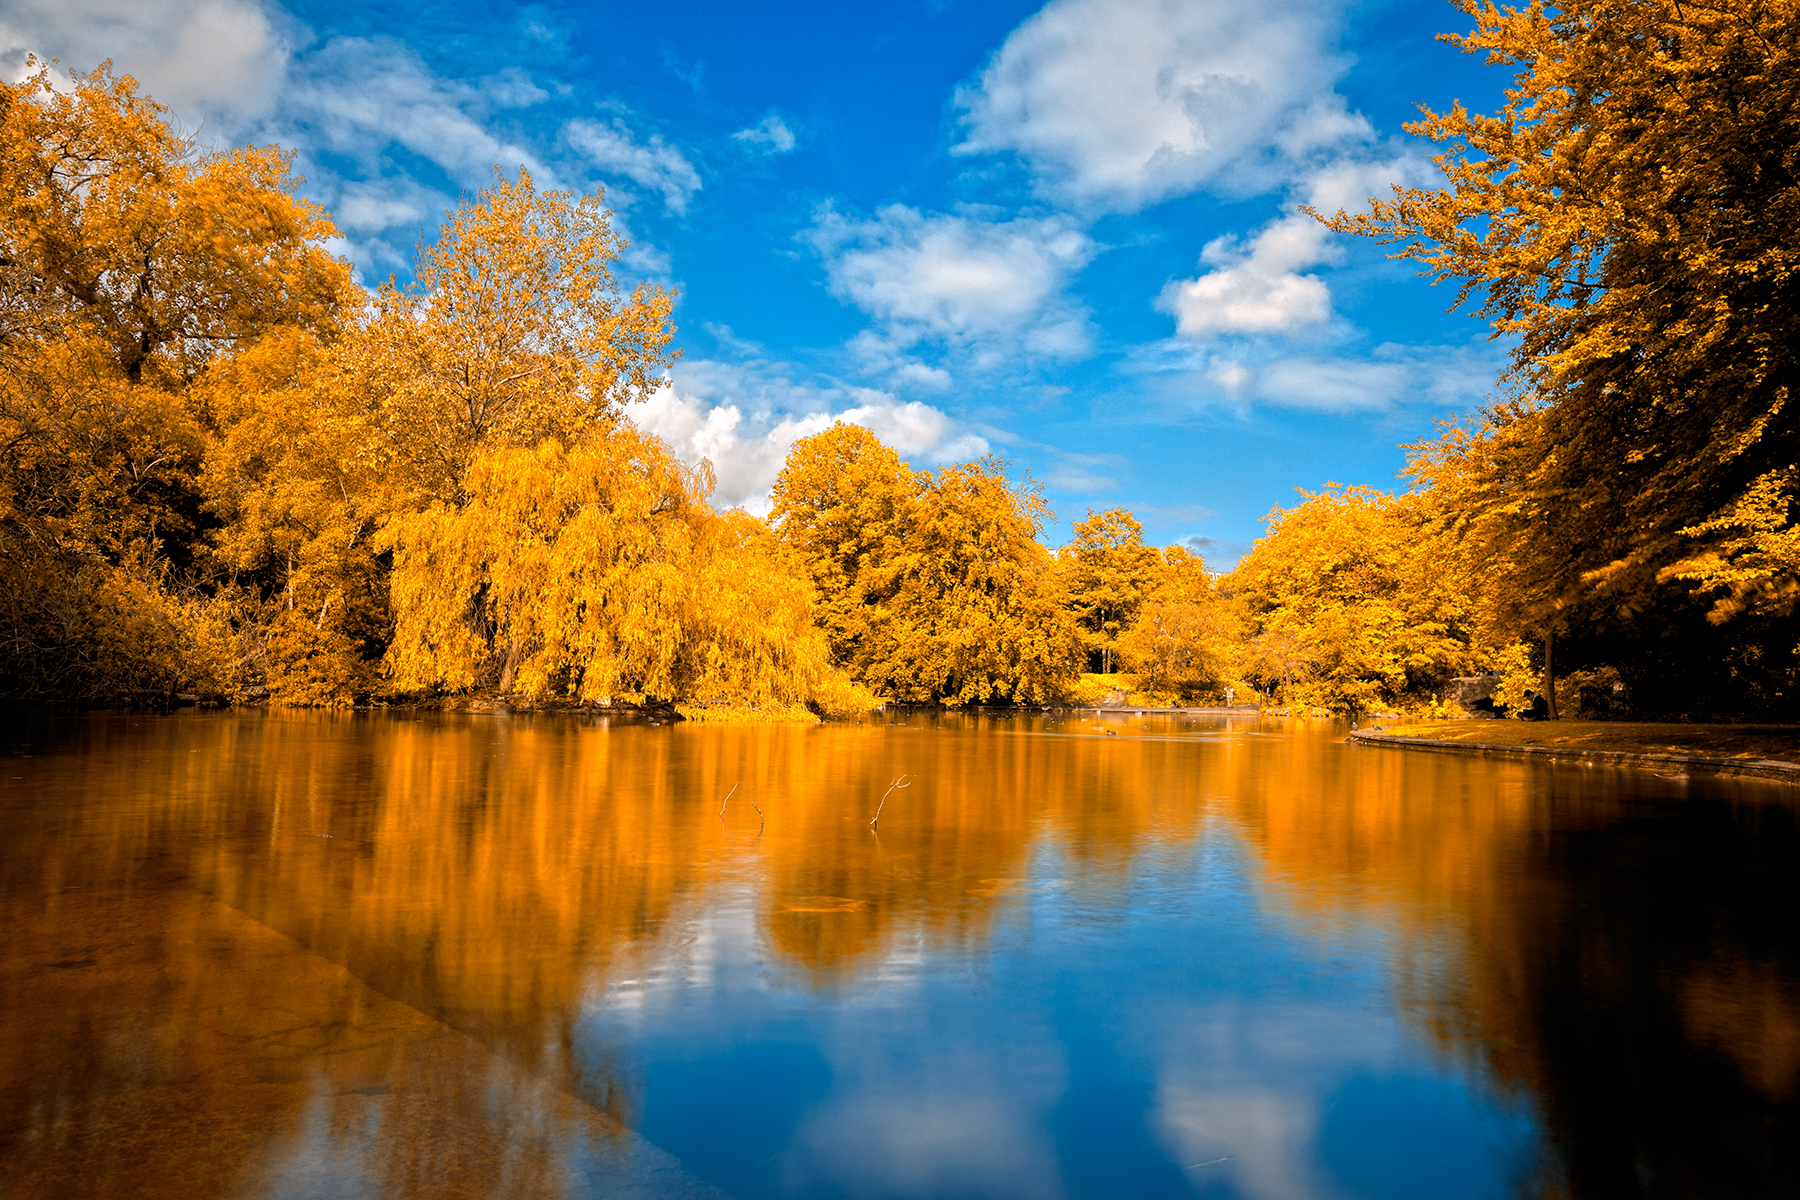 St Stephens Gold - HDR, Angle, Reflect, Shade, Scenic, HQ Photo